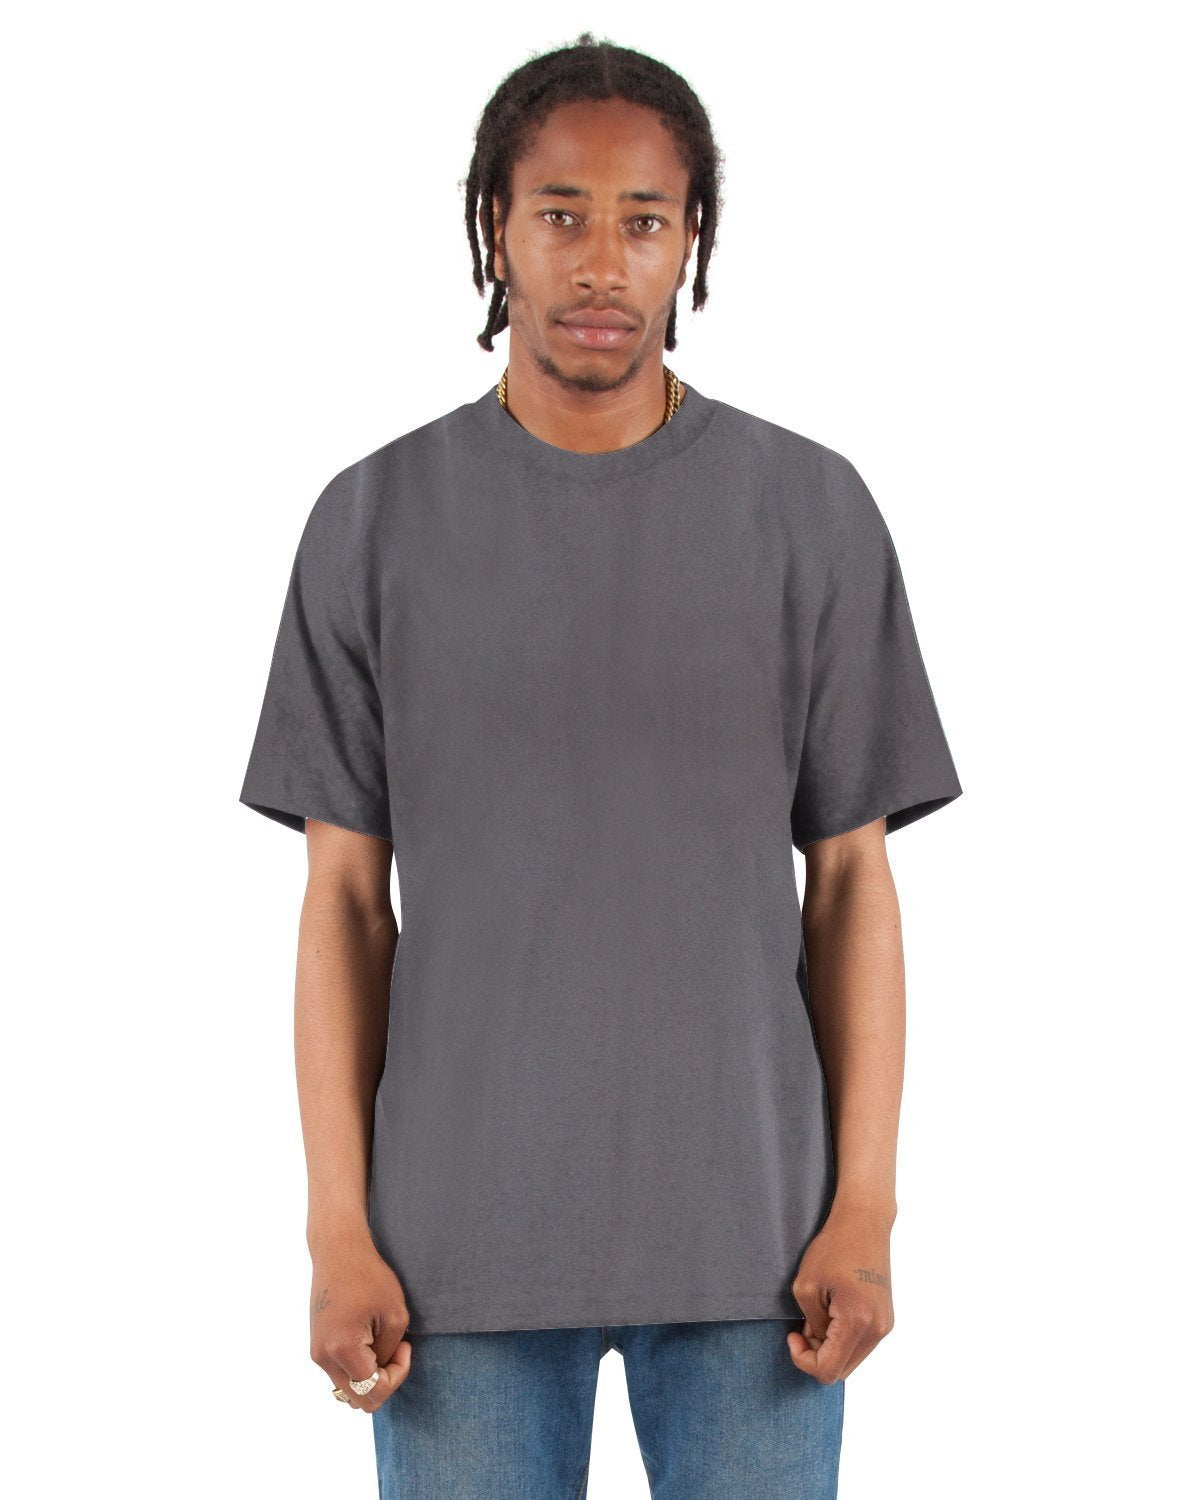 7.5 oz Max Heavyweight Short Sleeve - Large Tall Sizes